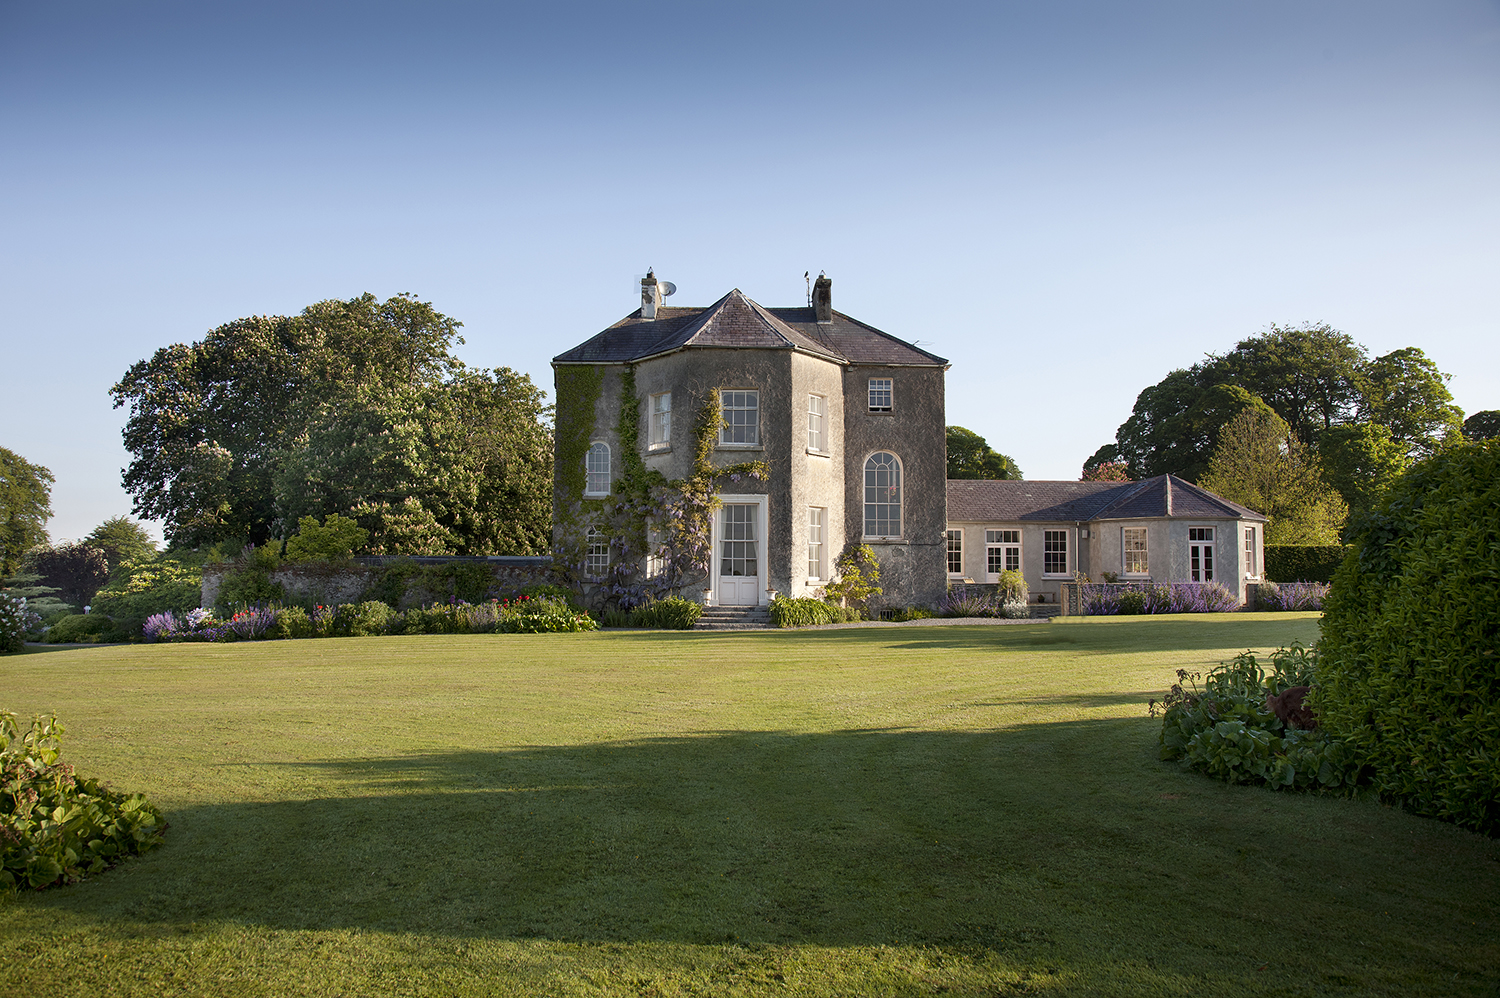 Burtown House garden front use for Guide to Carlow